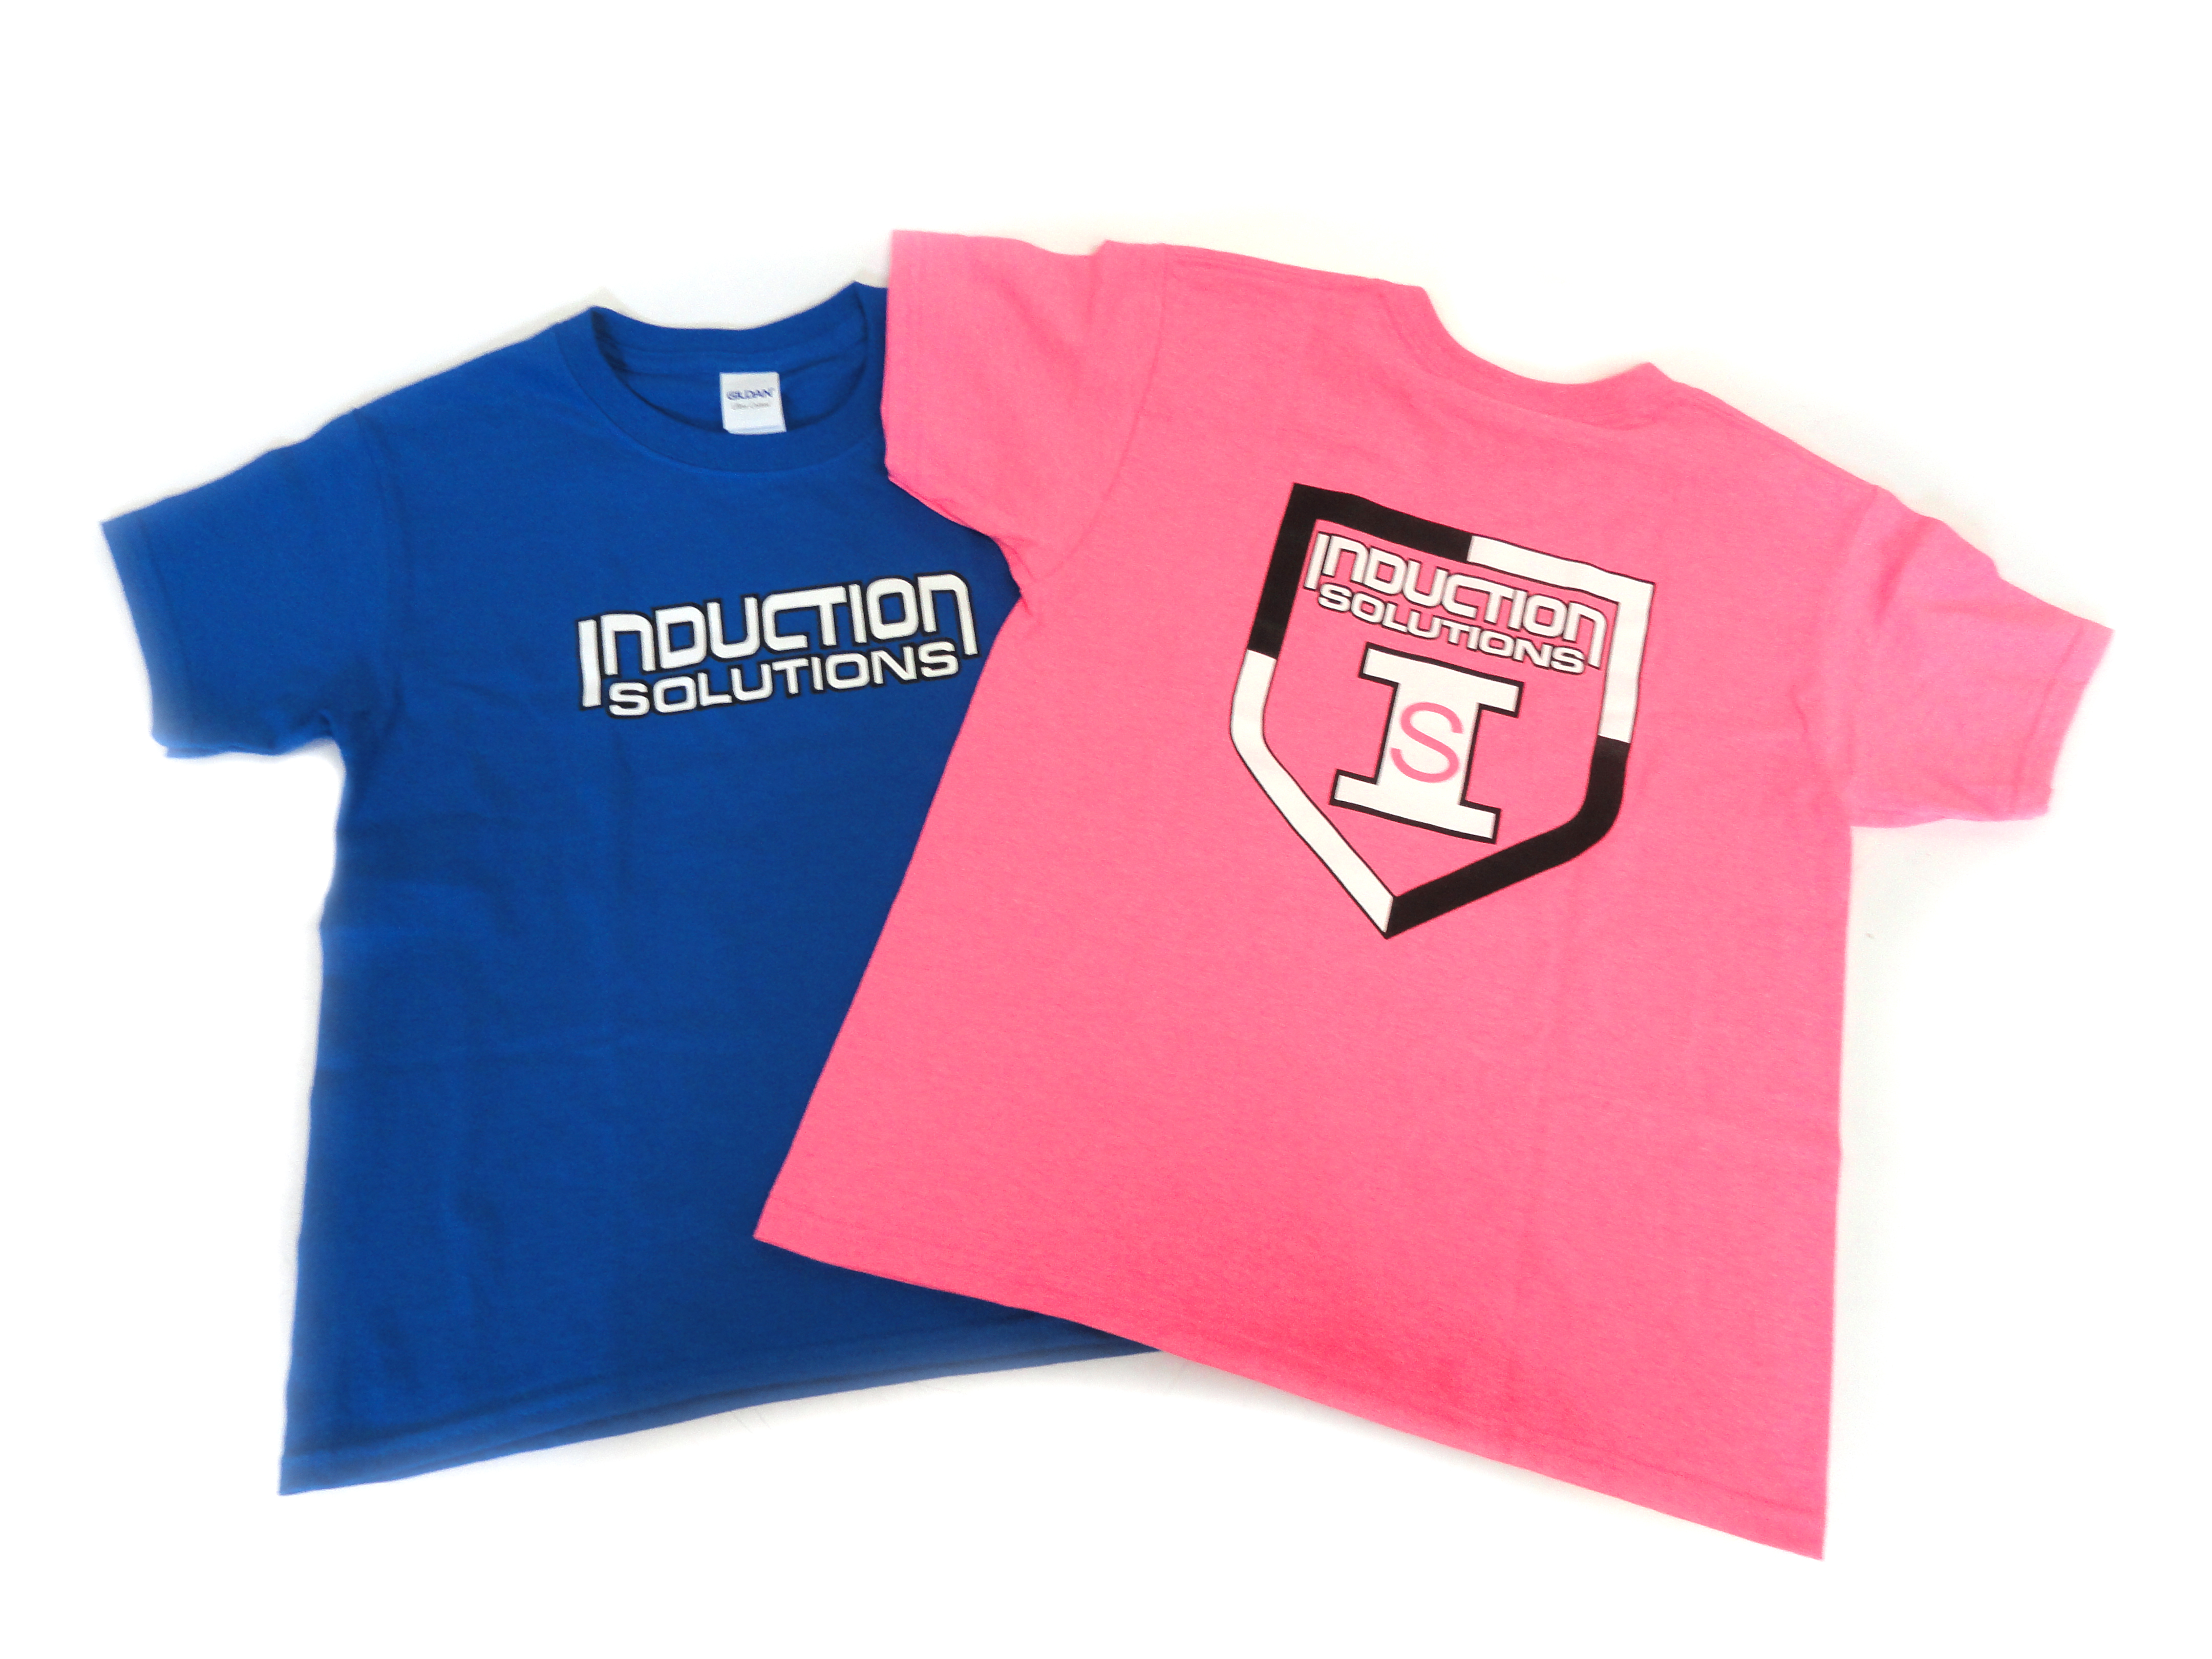 Induction Solutions Kids Shirts